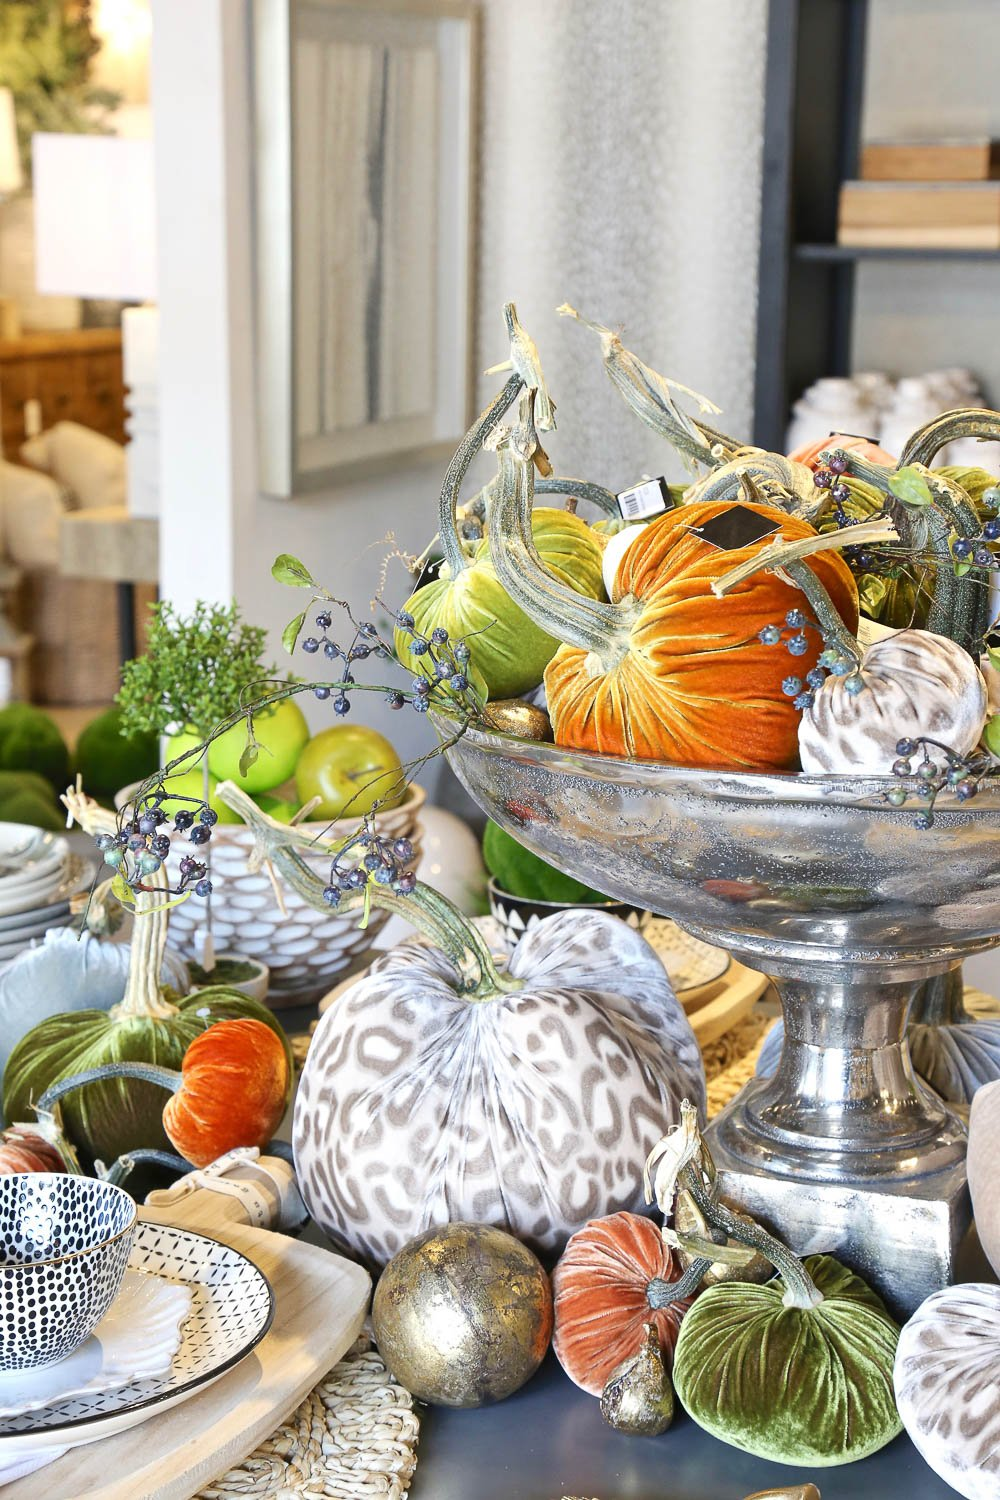 Fall at Layered Home Design Center